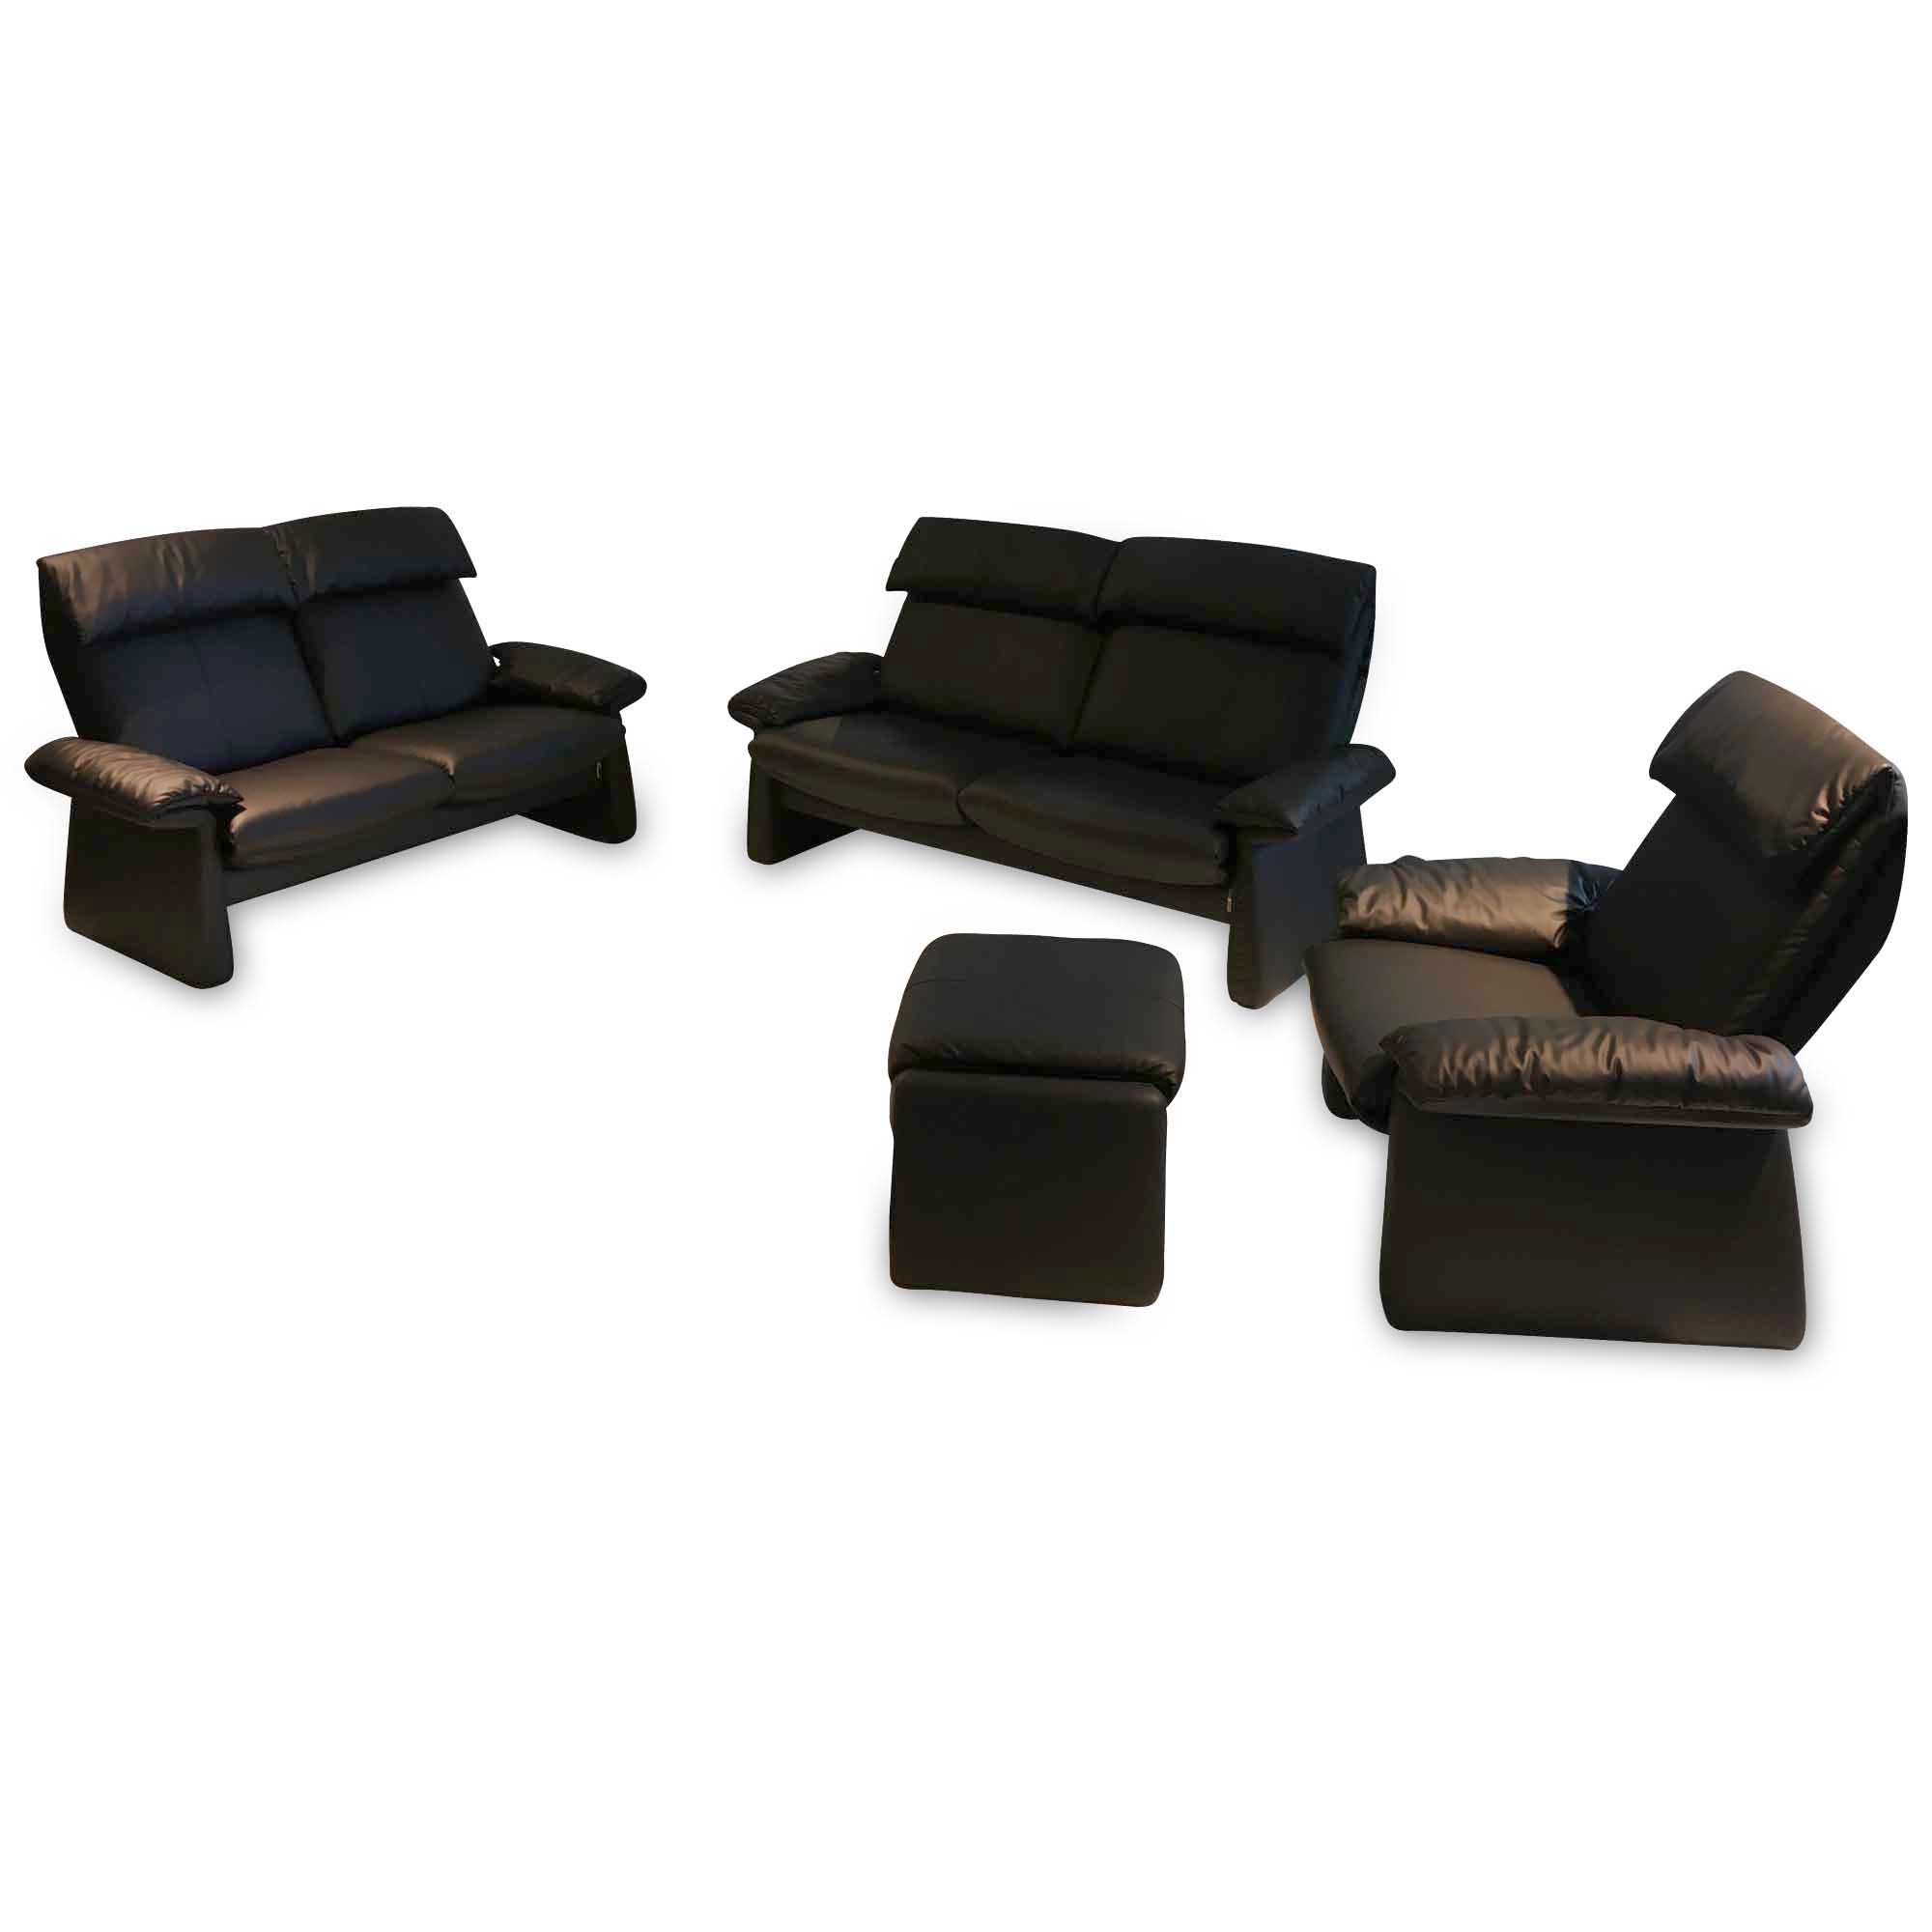 erpo ausstellungsst cke angebote online g nstig kaufen m belfirst. Black Bedroom Furniture Sets. Home Design Ideas